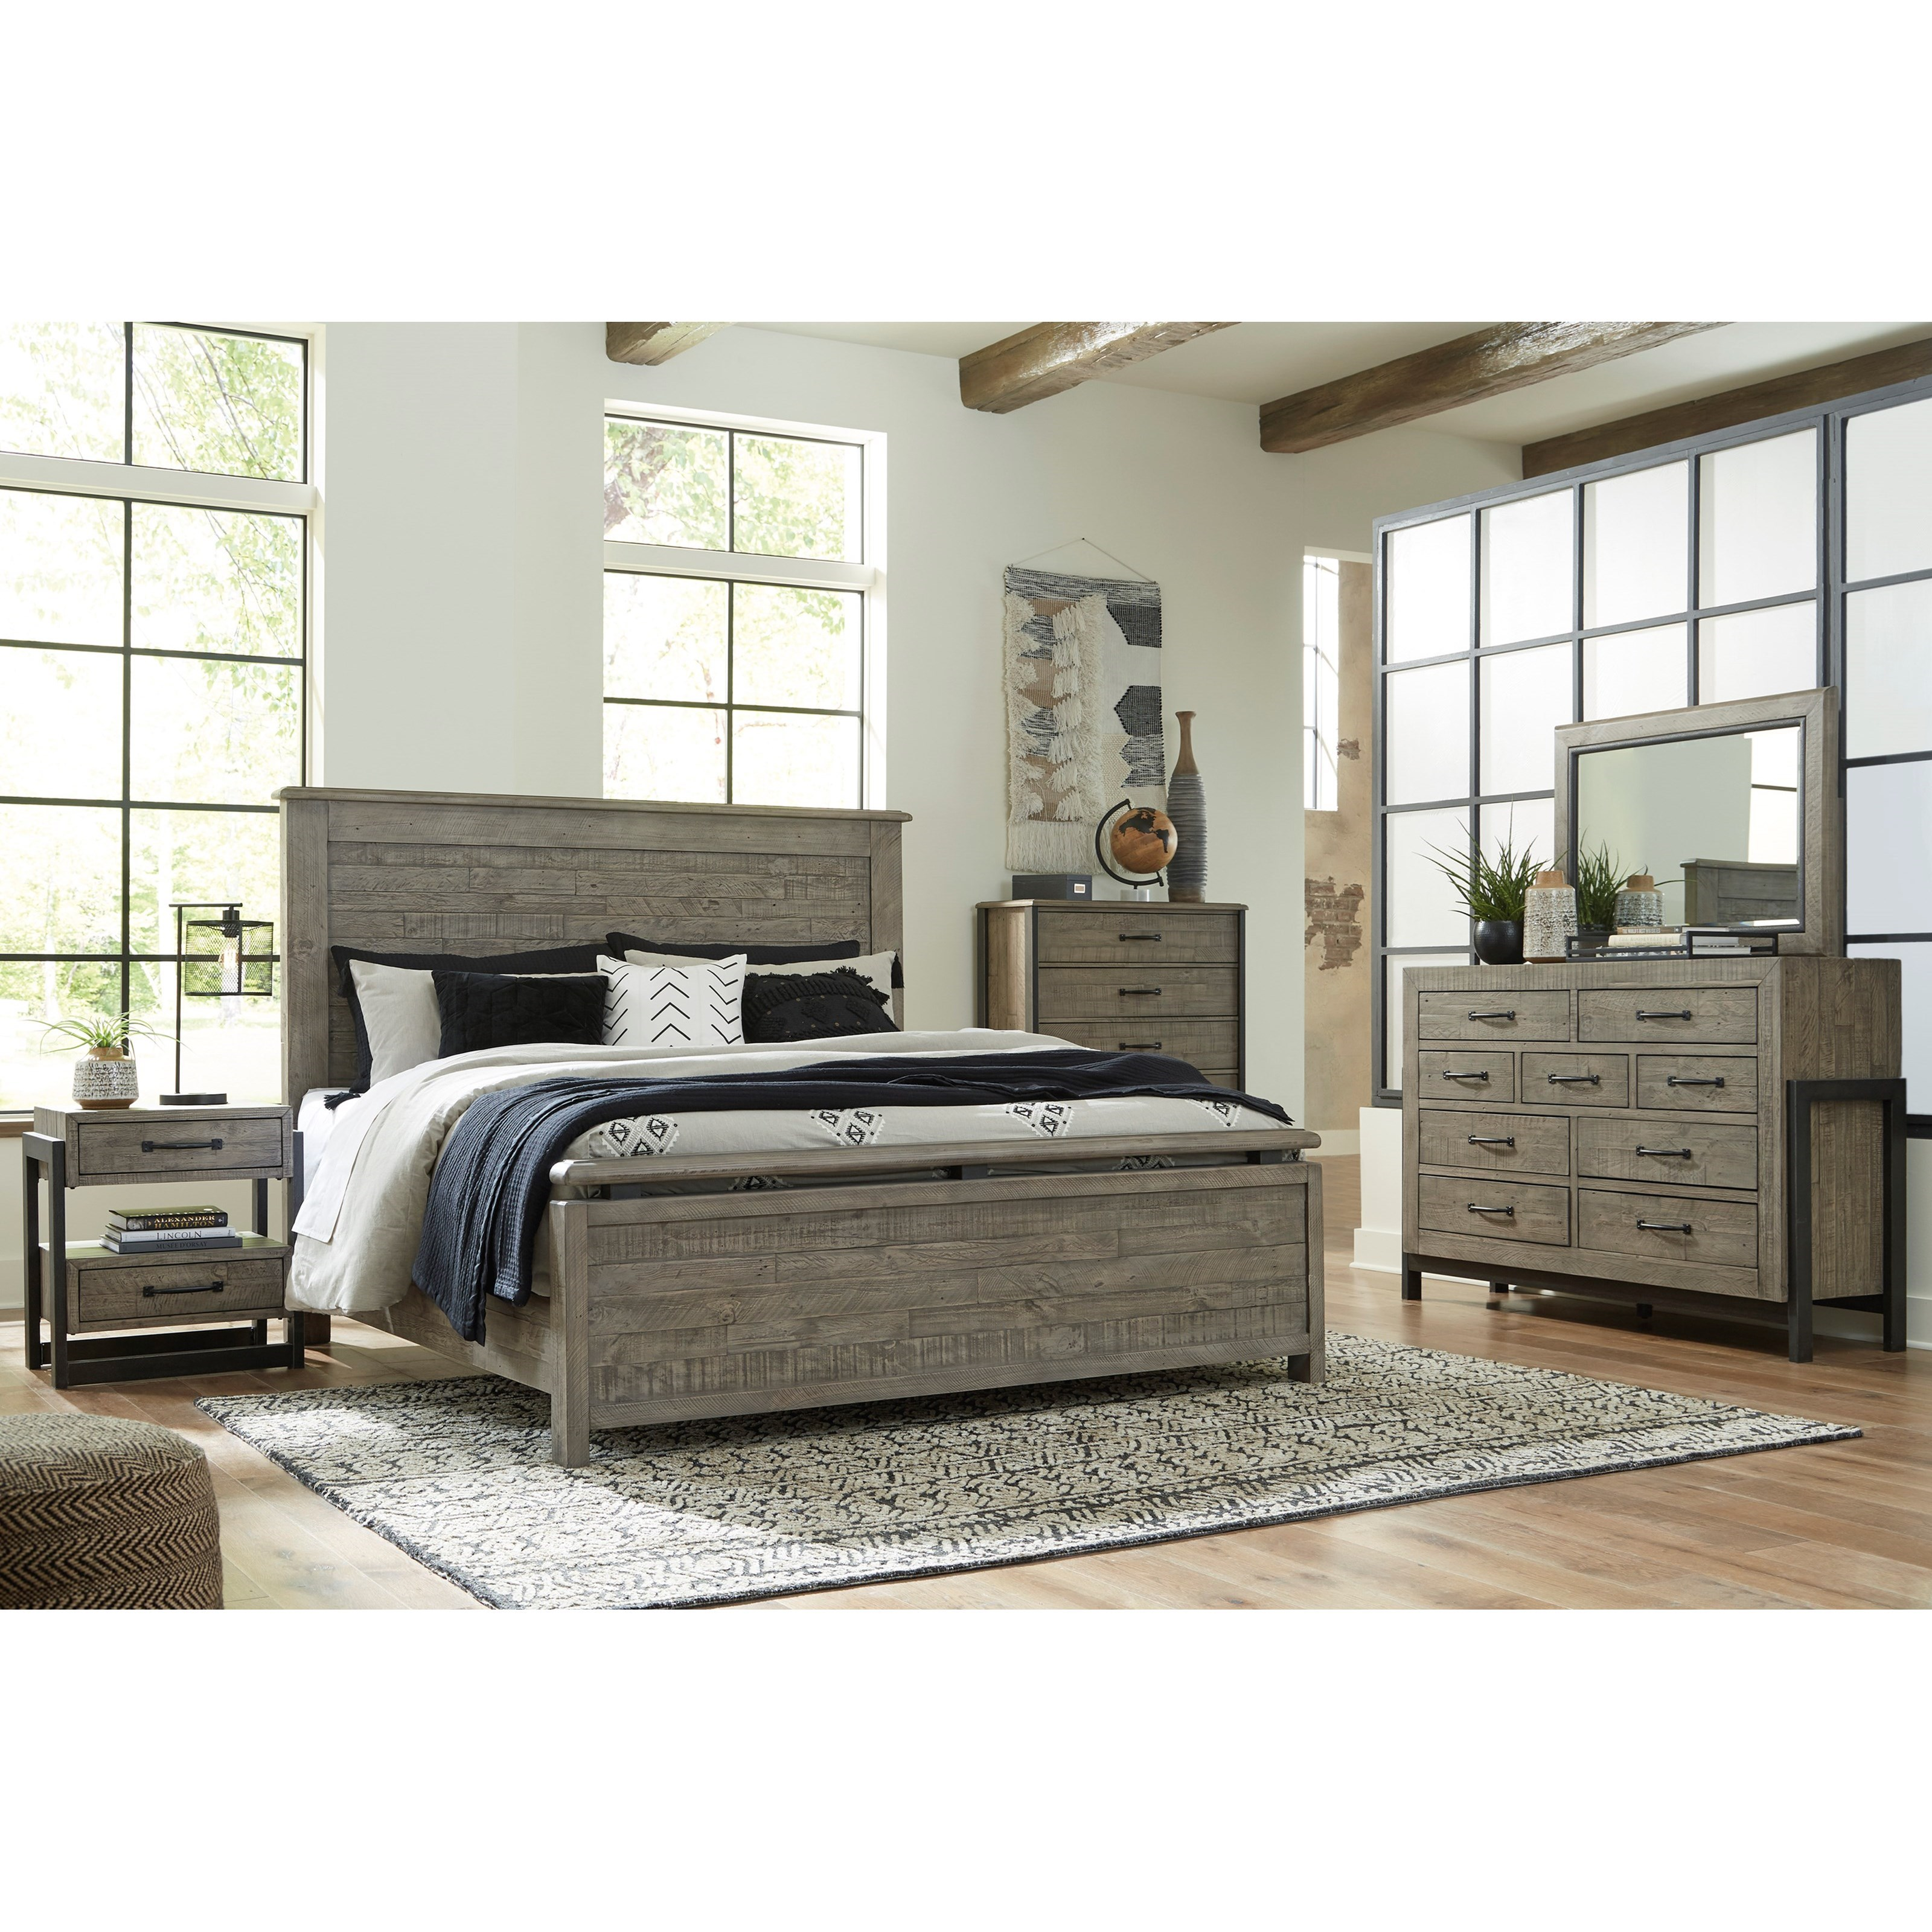 Brennagan Queen Bedroom Group by Ashley (Signature Design) at Johnny Janosik